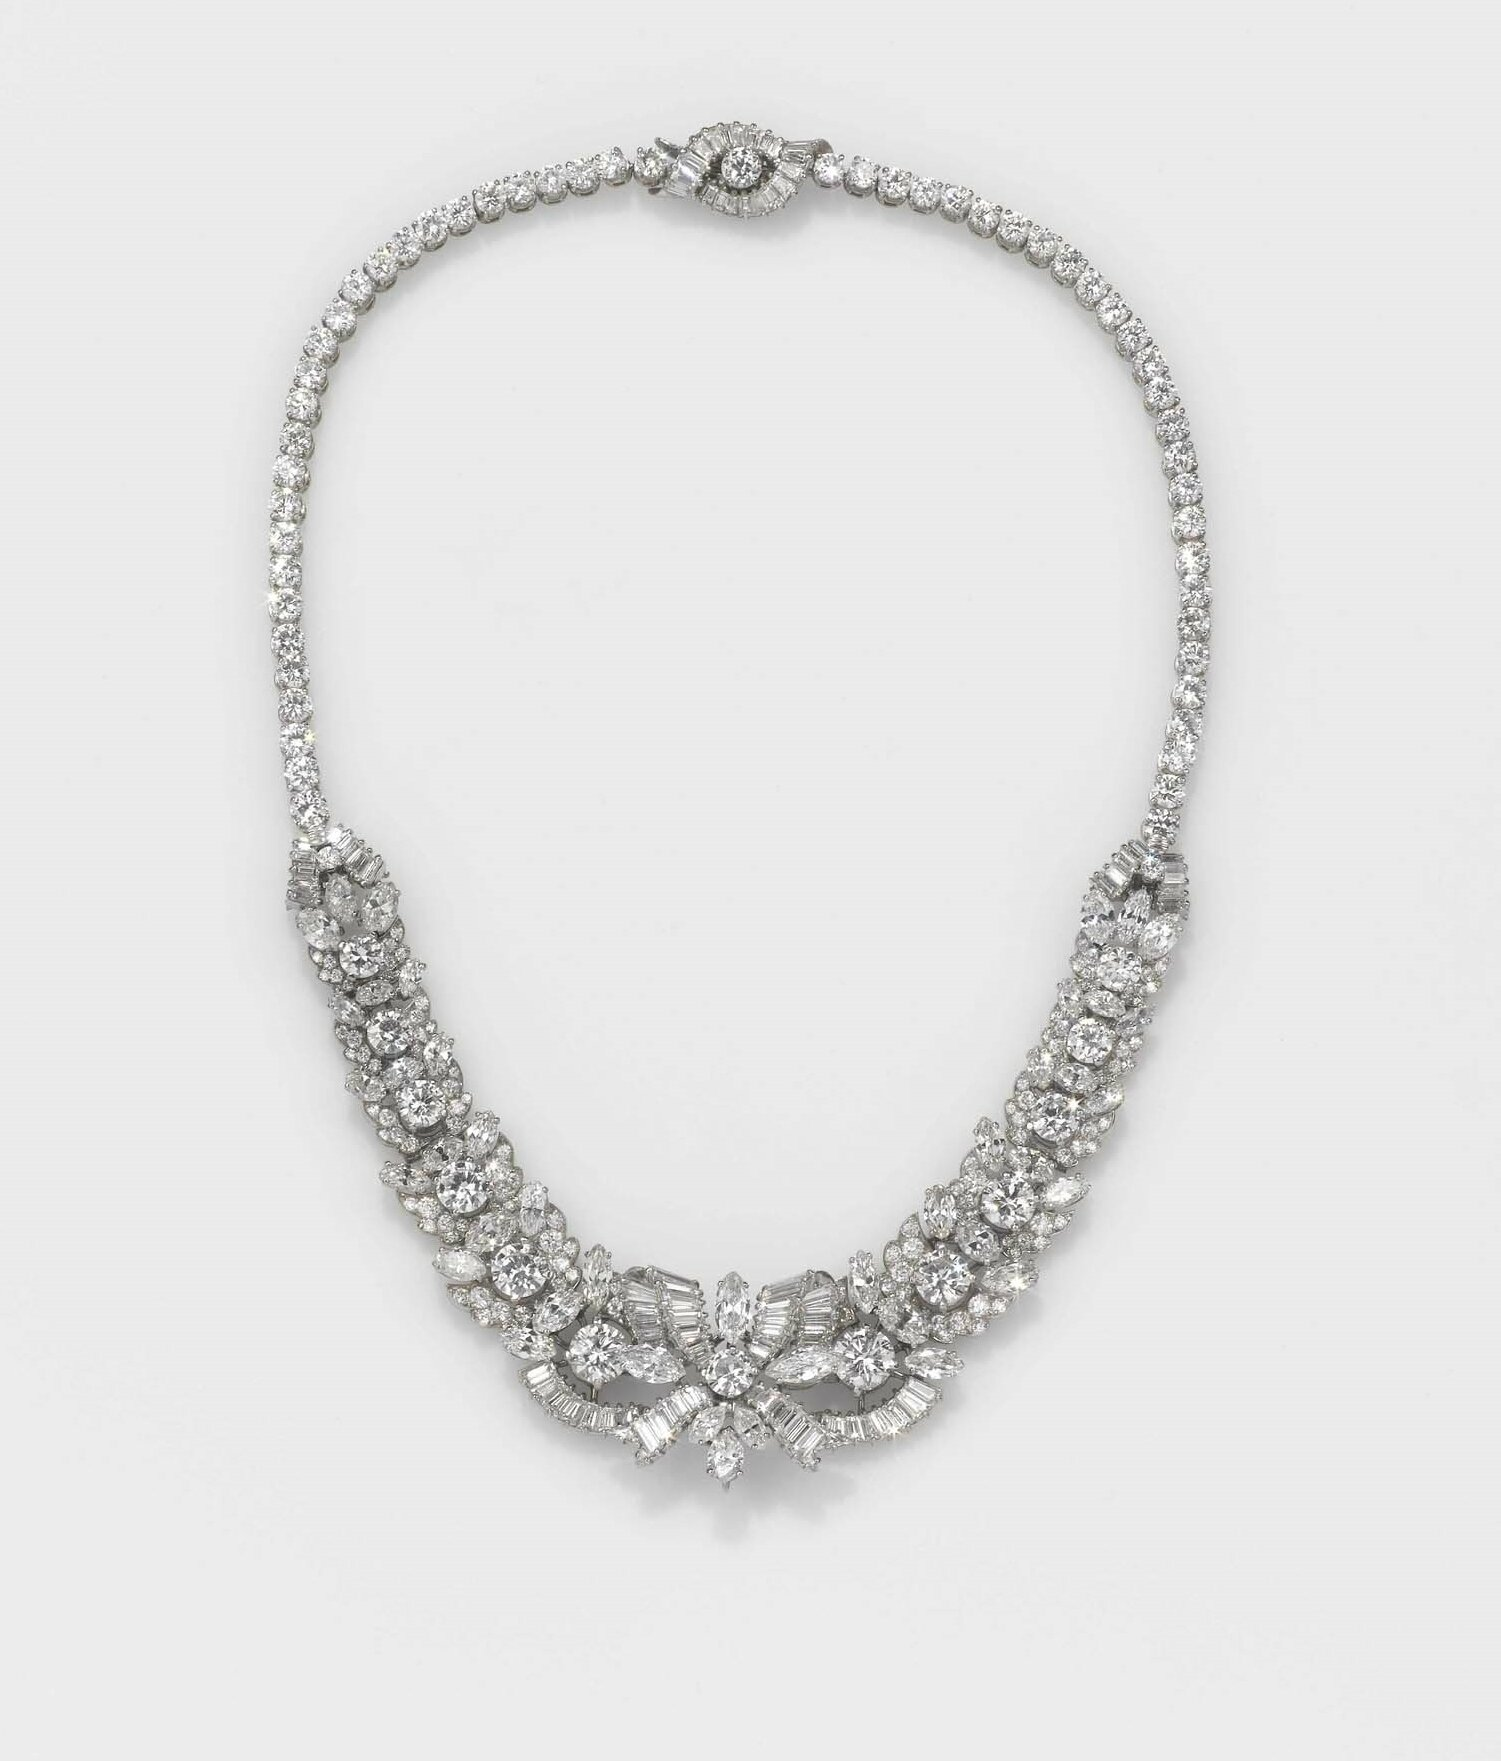 Petochi, an old-cut diamond necklace-bracelet combination, Rome, first half 20th century